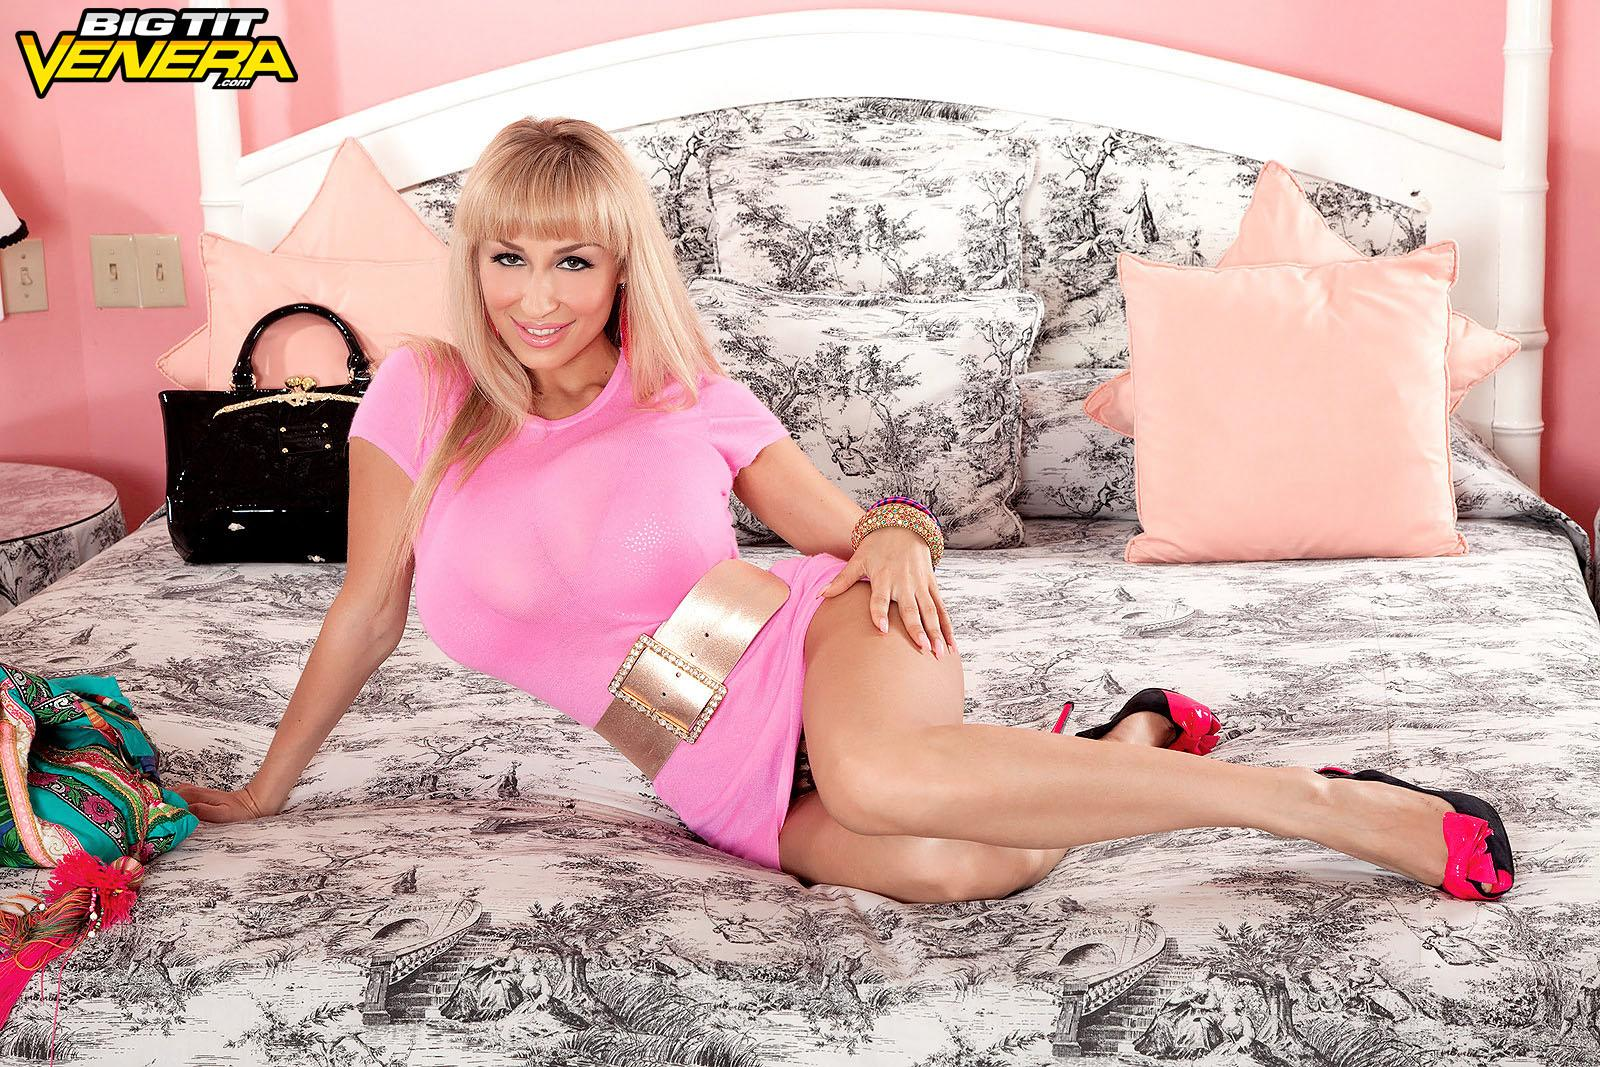 Spindly blond MILF Venera pulling out her big funbags from semitransparent ebony lingerie